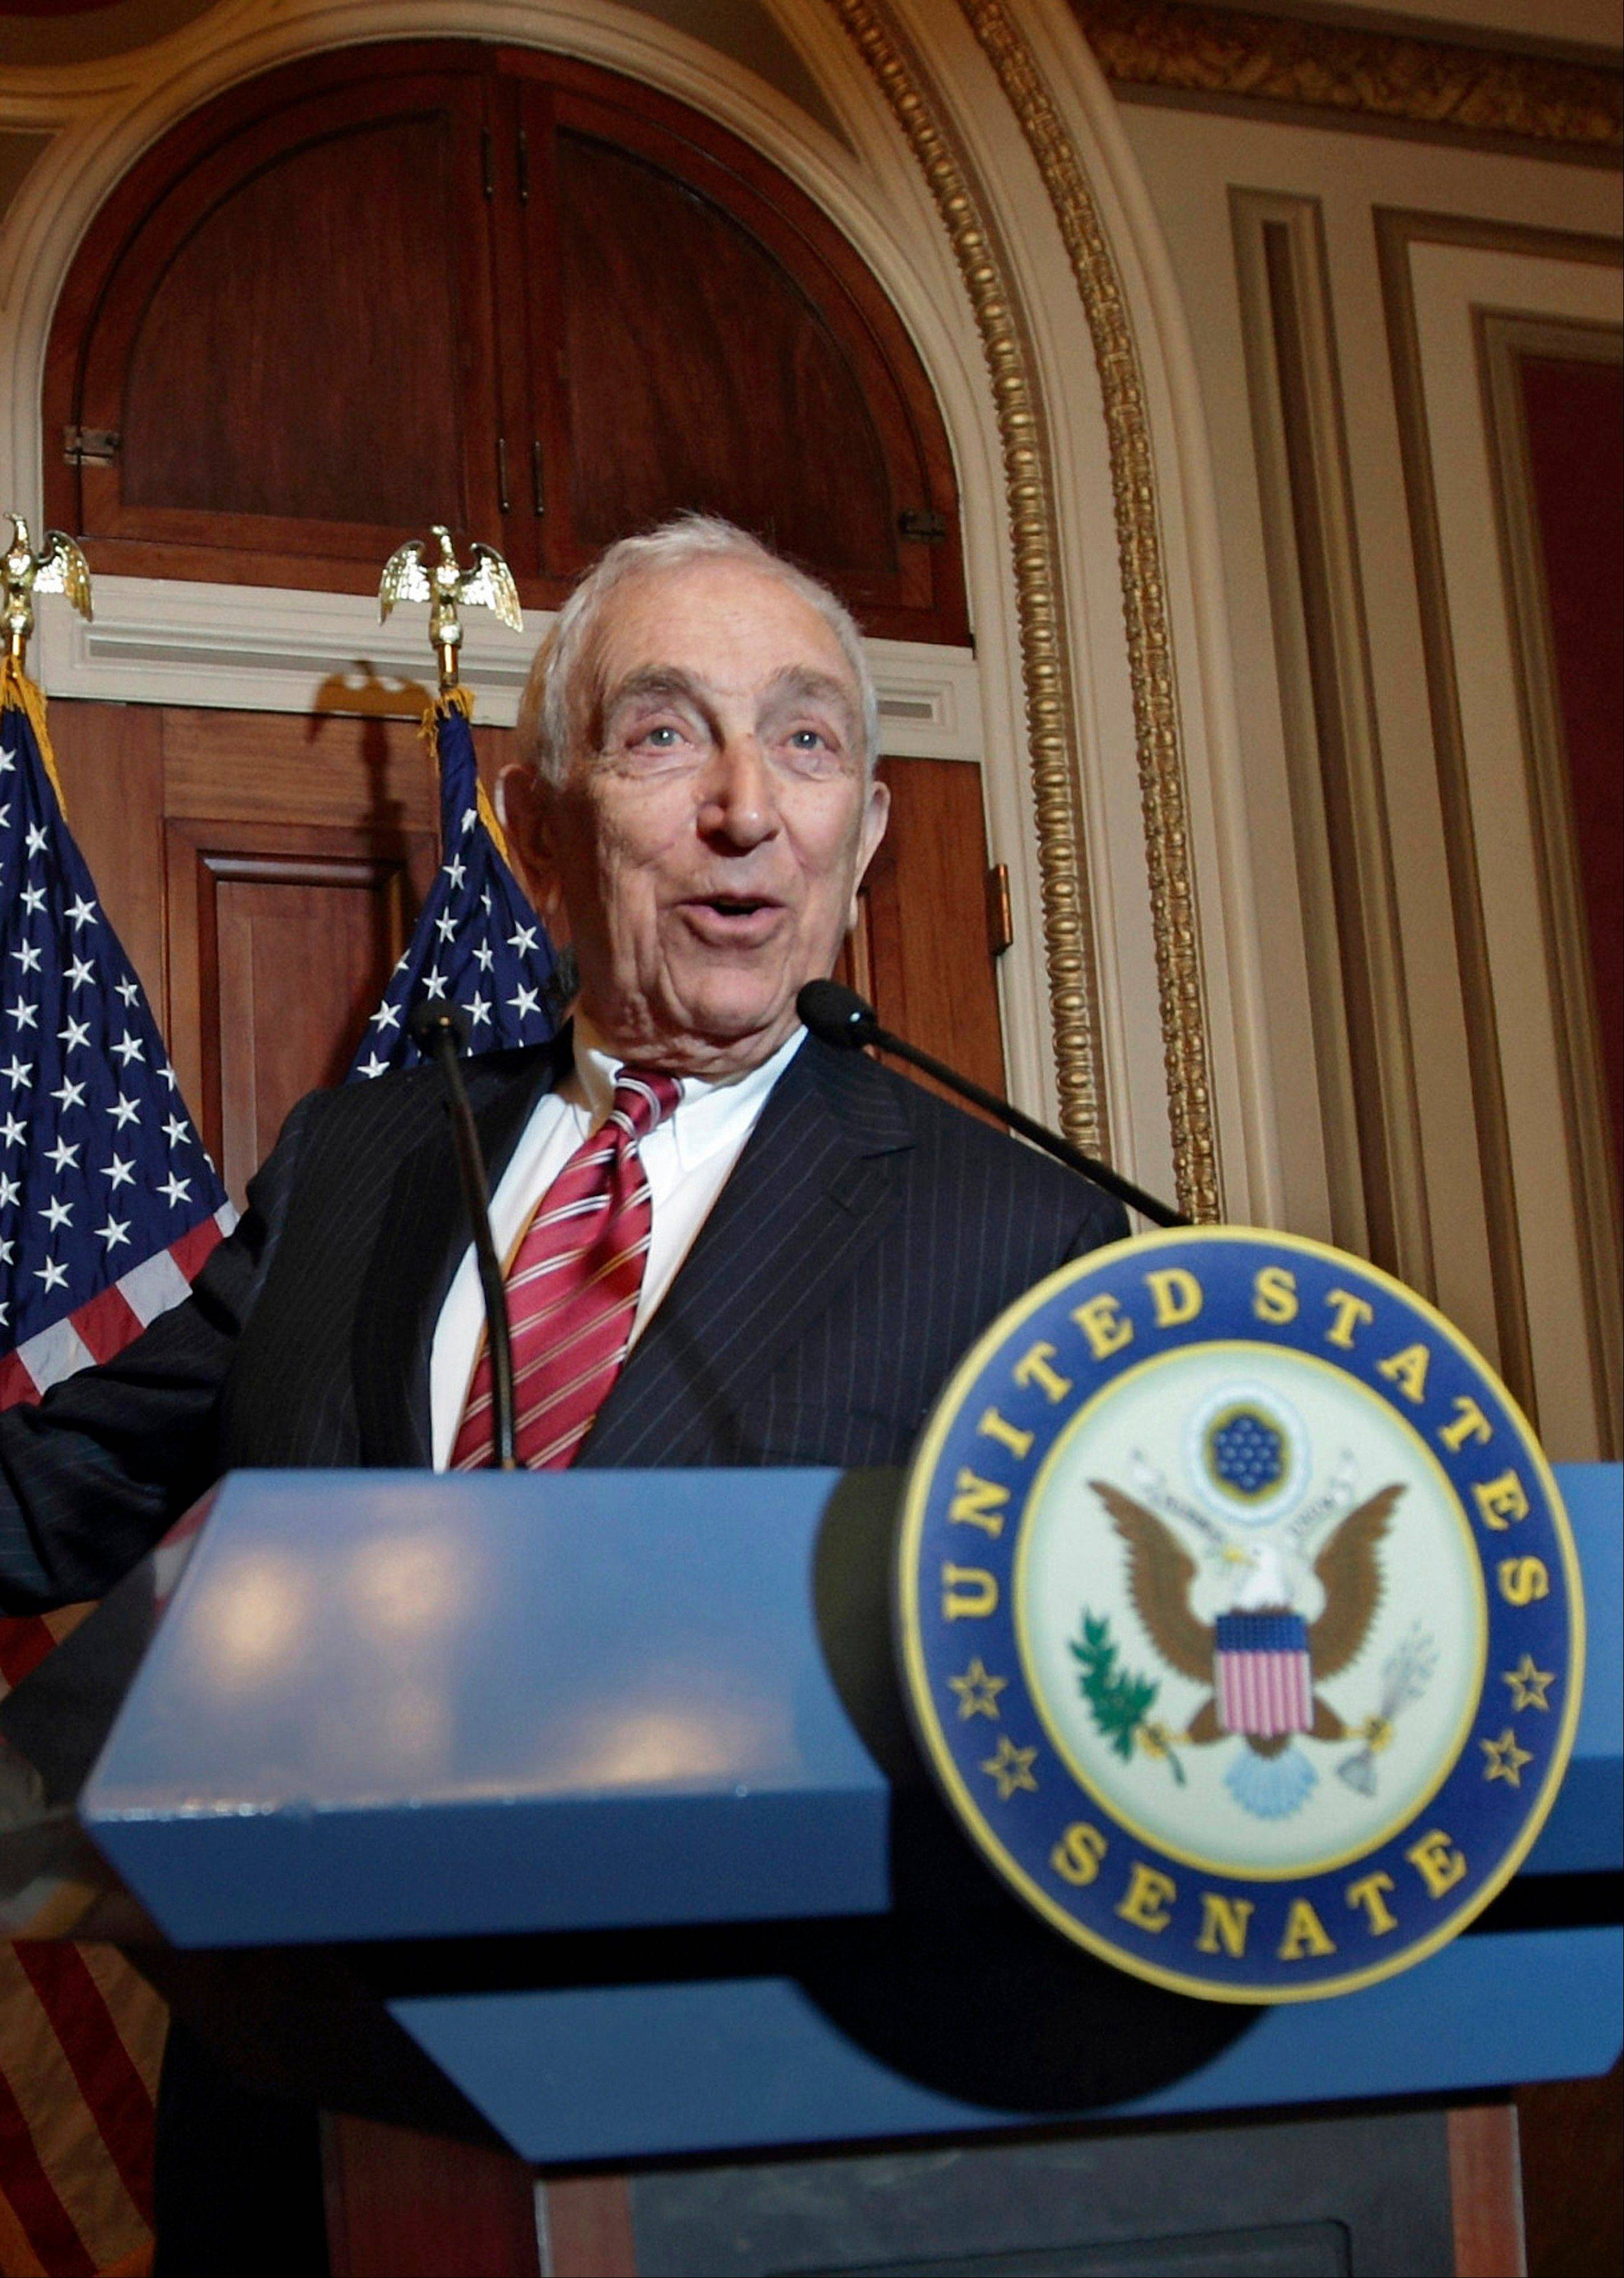 In this Nov. 2, 2011, file photo, Sen. Frank Lautenberg, D-N.J., speaks during a news conference on Capitol Hill in Washington. Lautenberg, a multimillionaire New Jersey businessman and liberal who was called out of retirement for a second tour of duty in Congress, died Monday, June 3, 2013, at age 89.